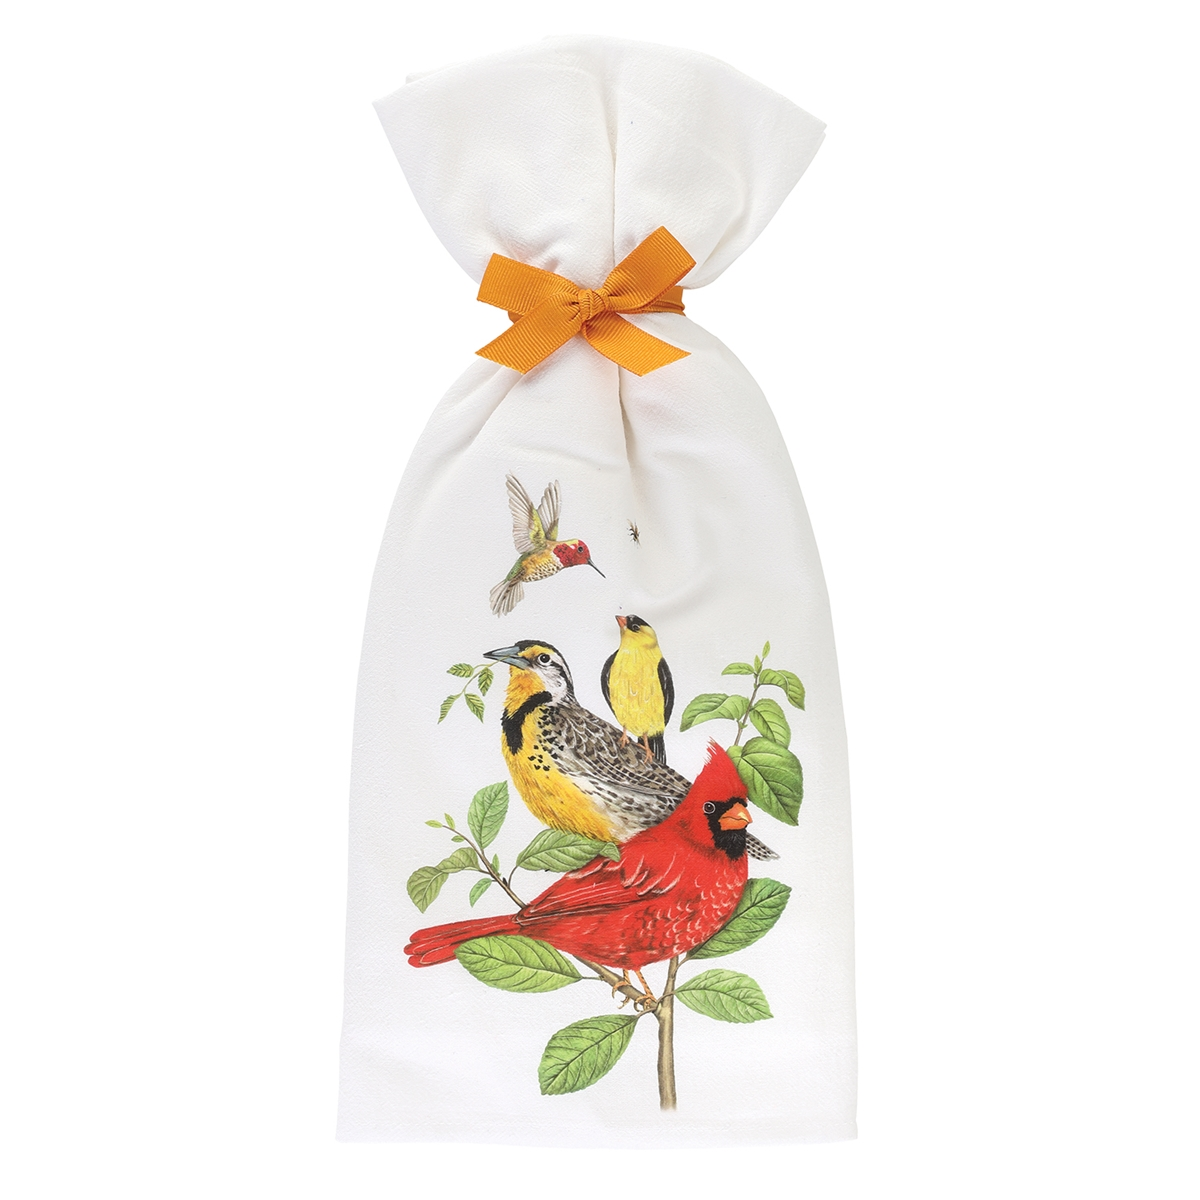 Bird Branch Towel Set